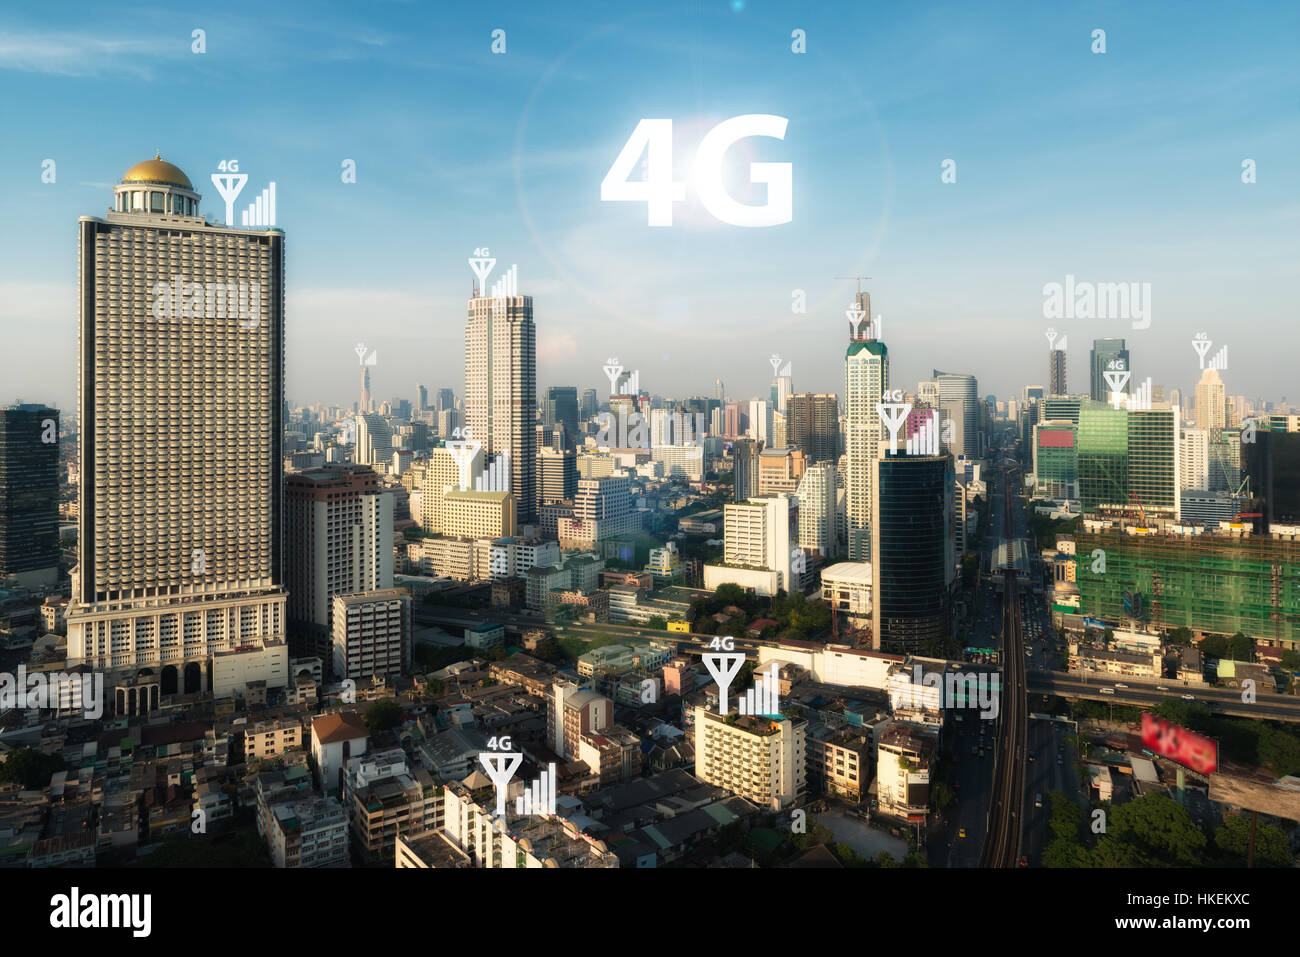 Smart city and 4G signal communication network, business district with office building, abstract image visual, internet - Stock Image